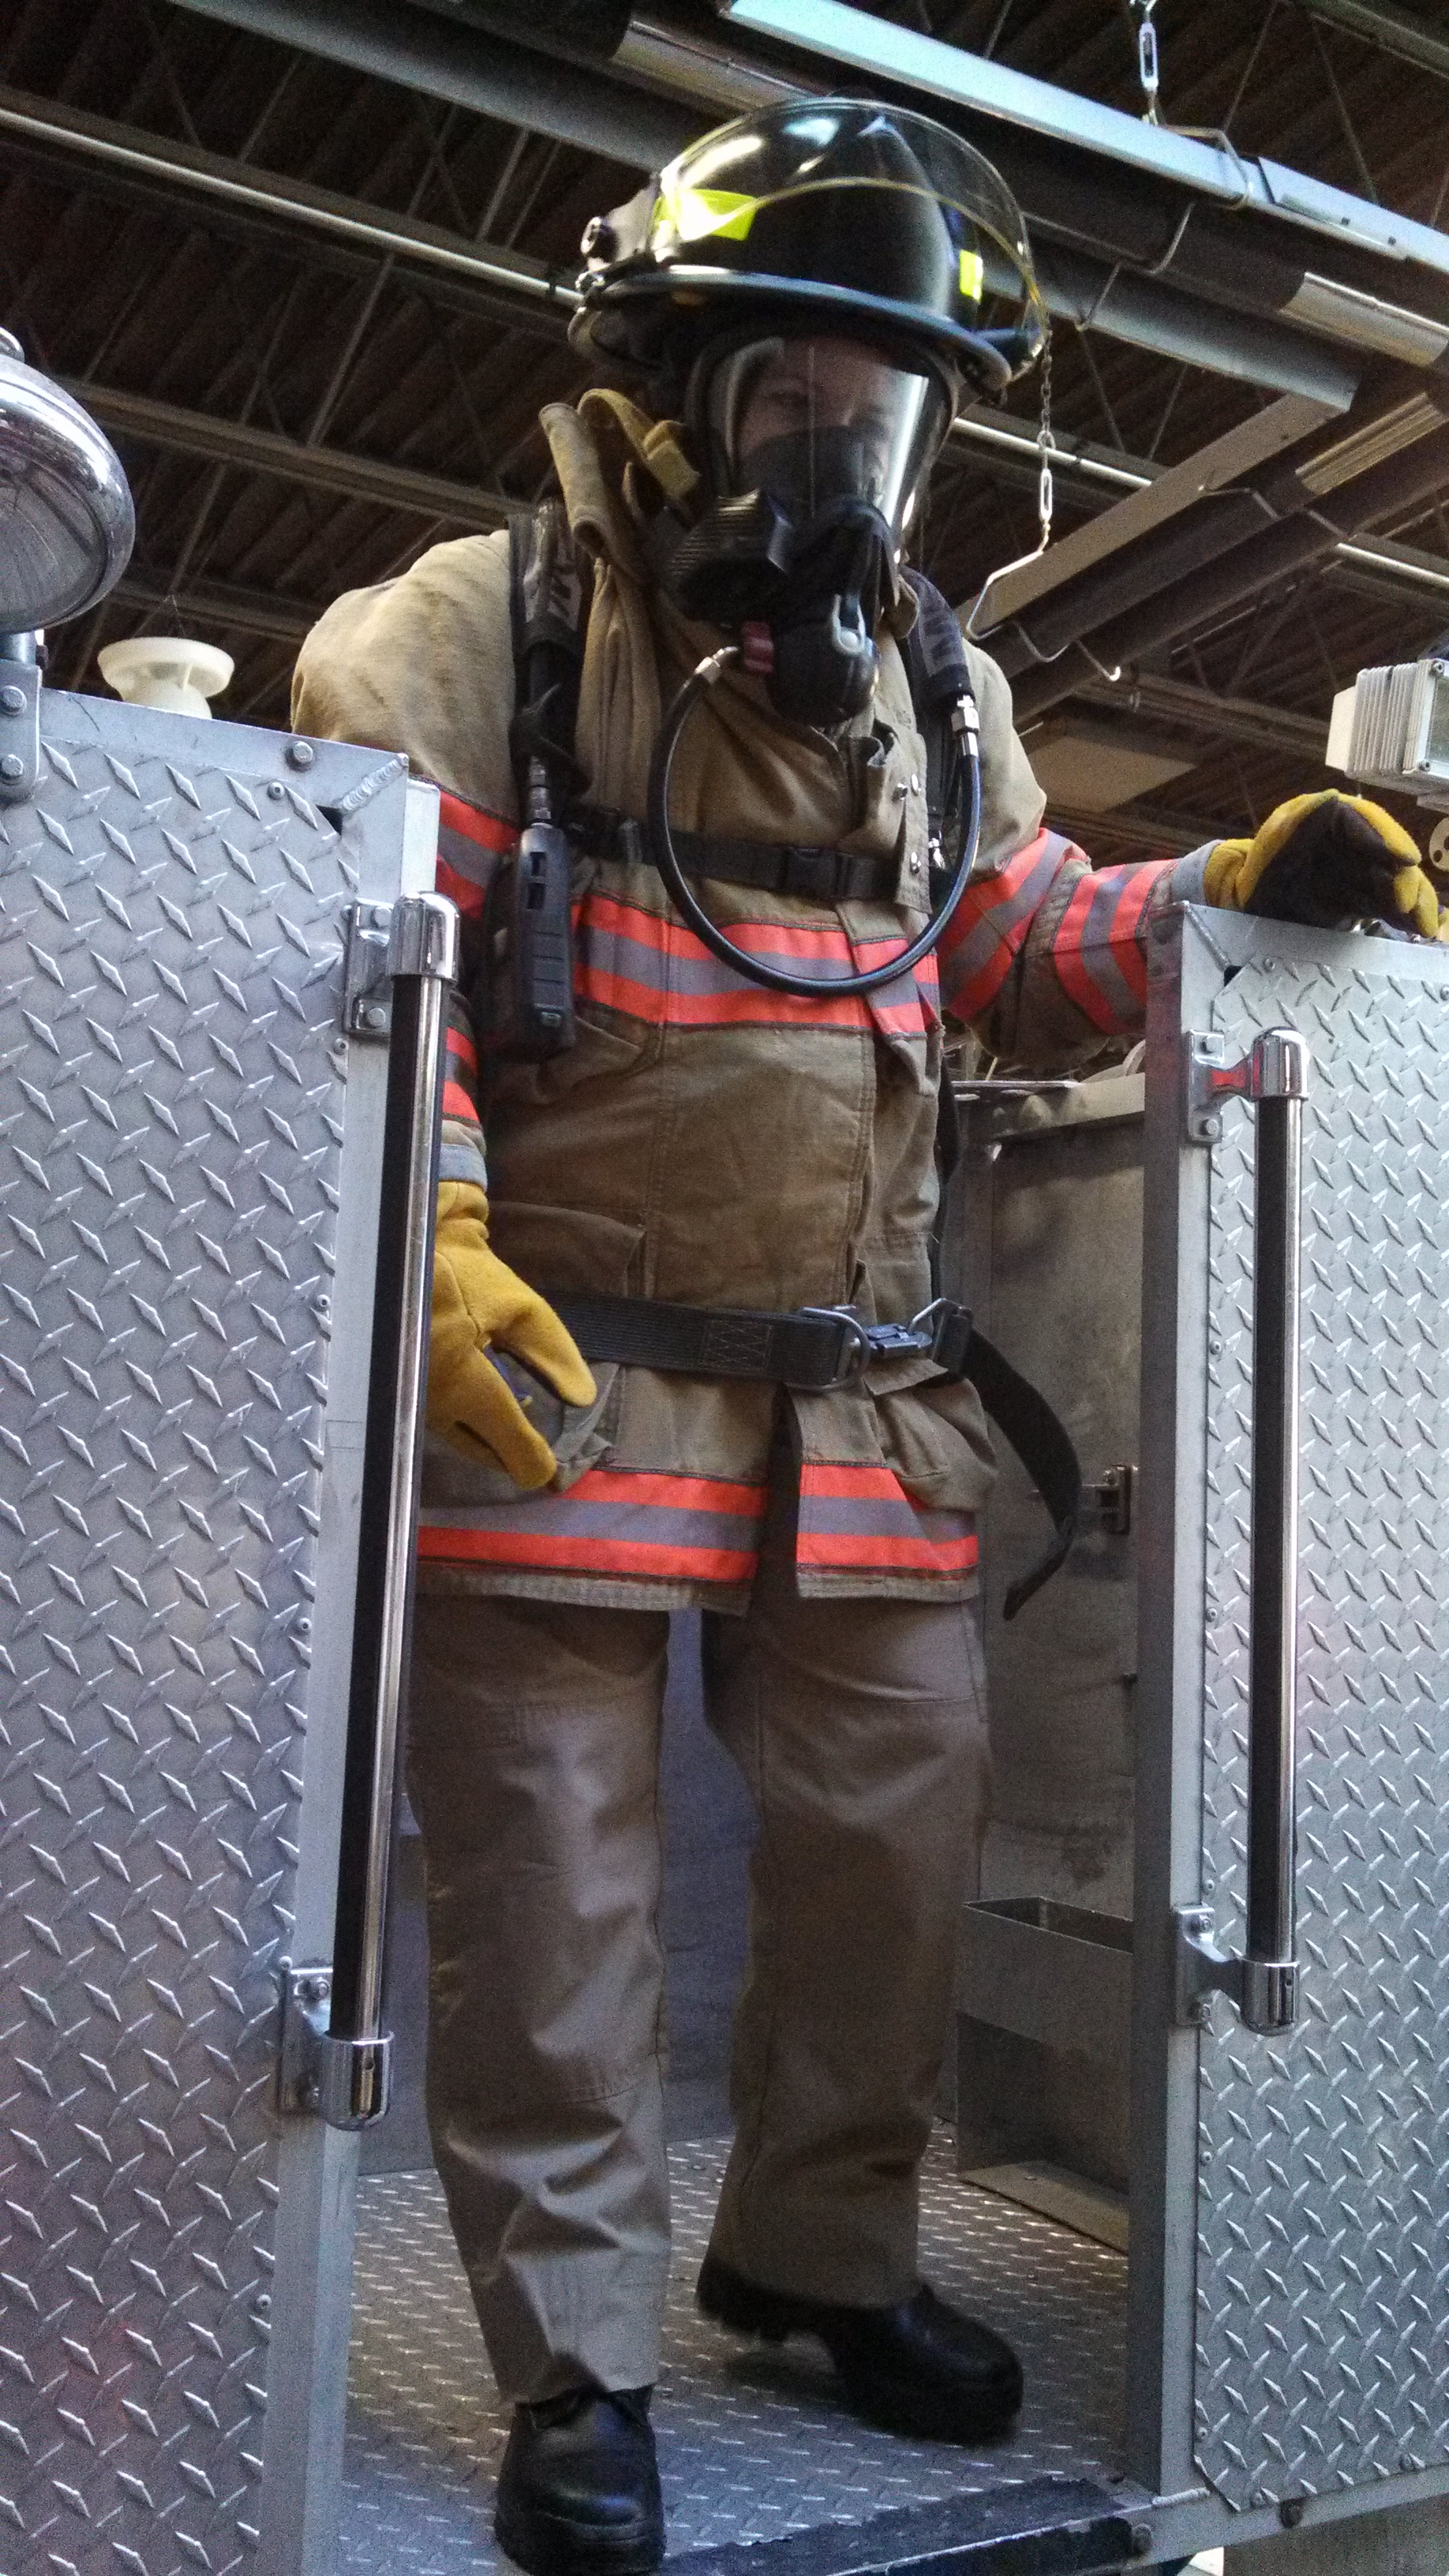 EMS fellow in bunker gear